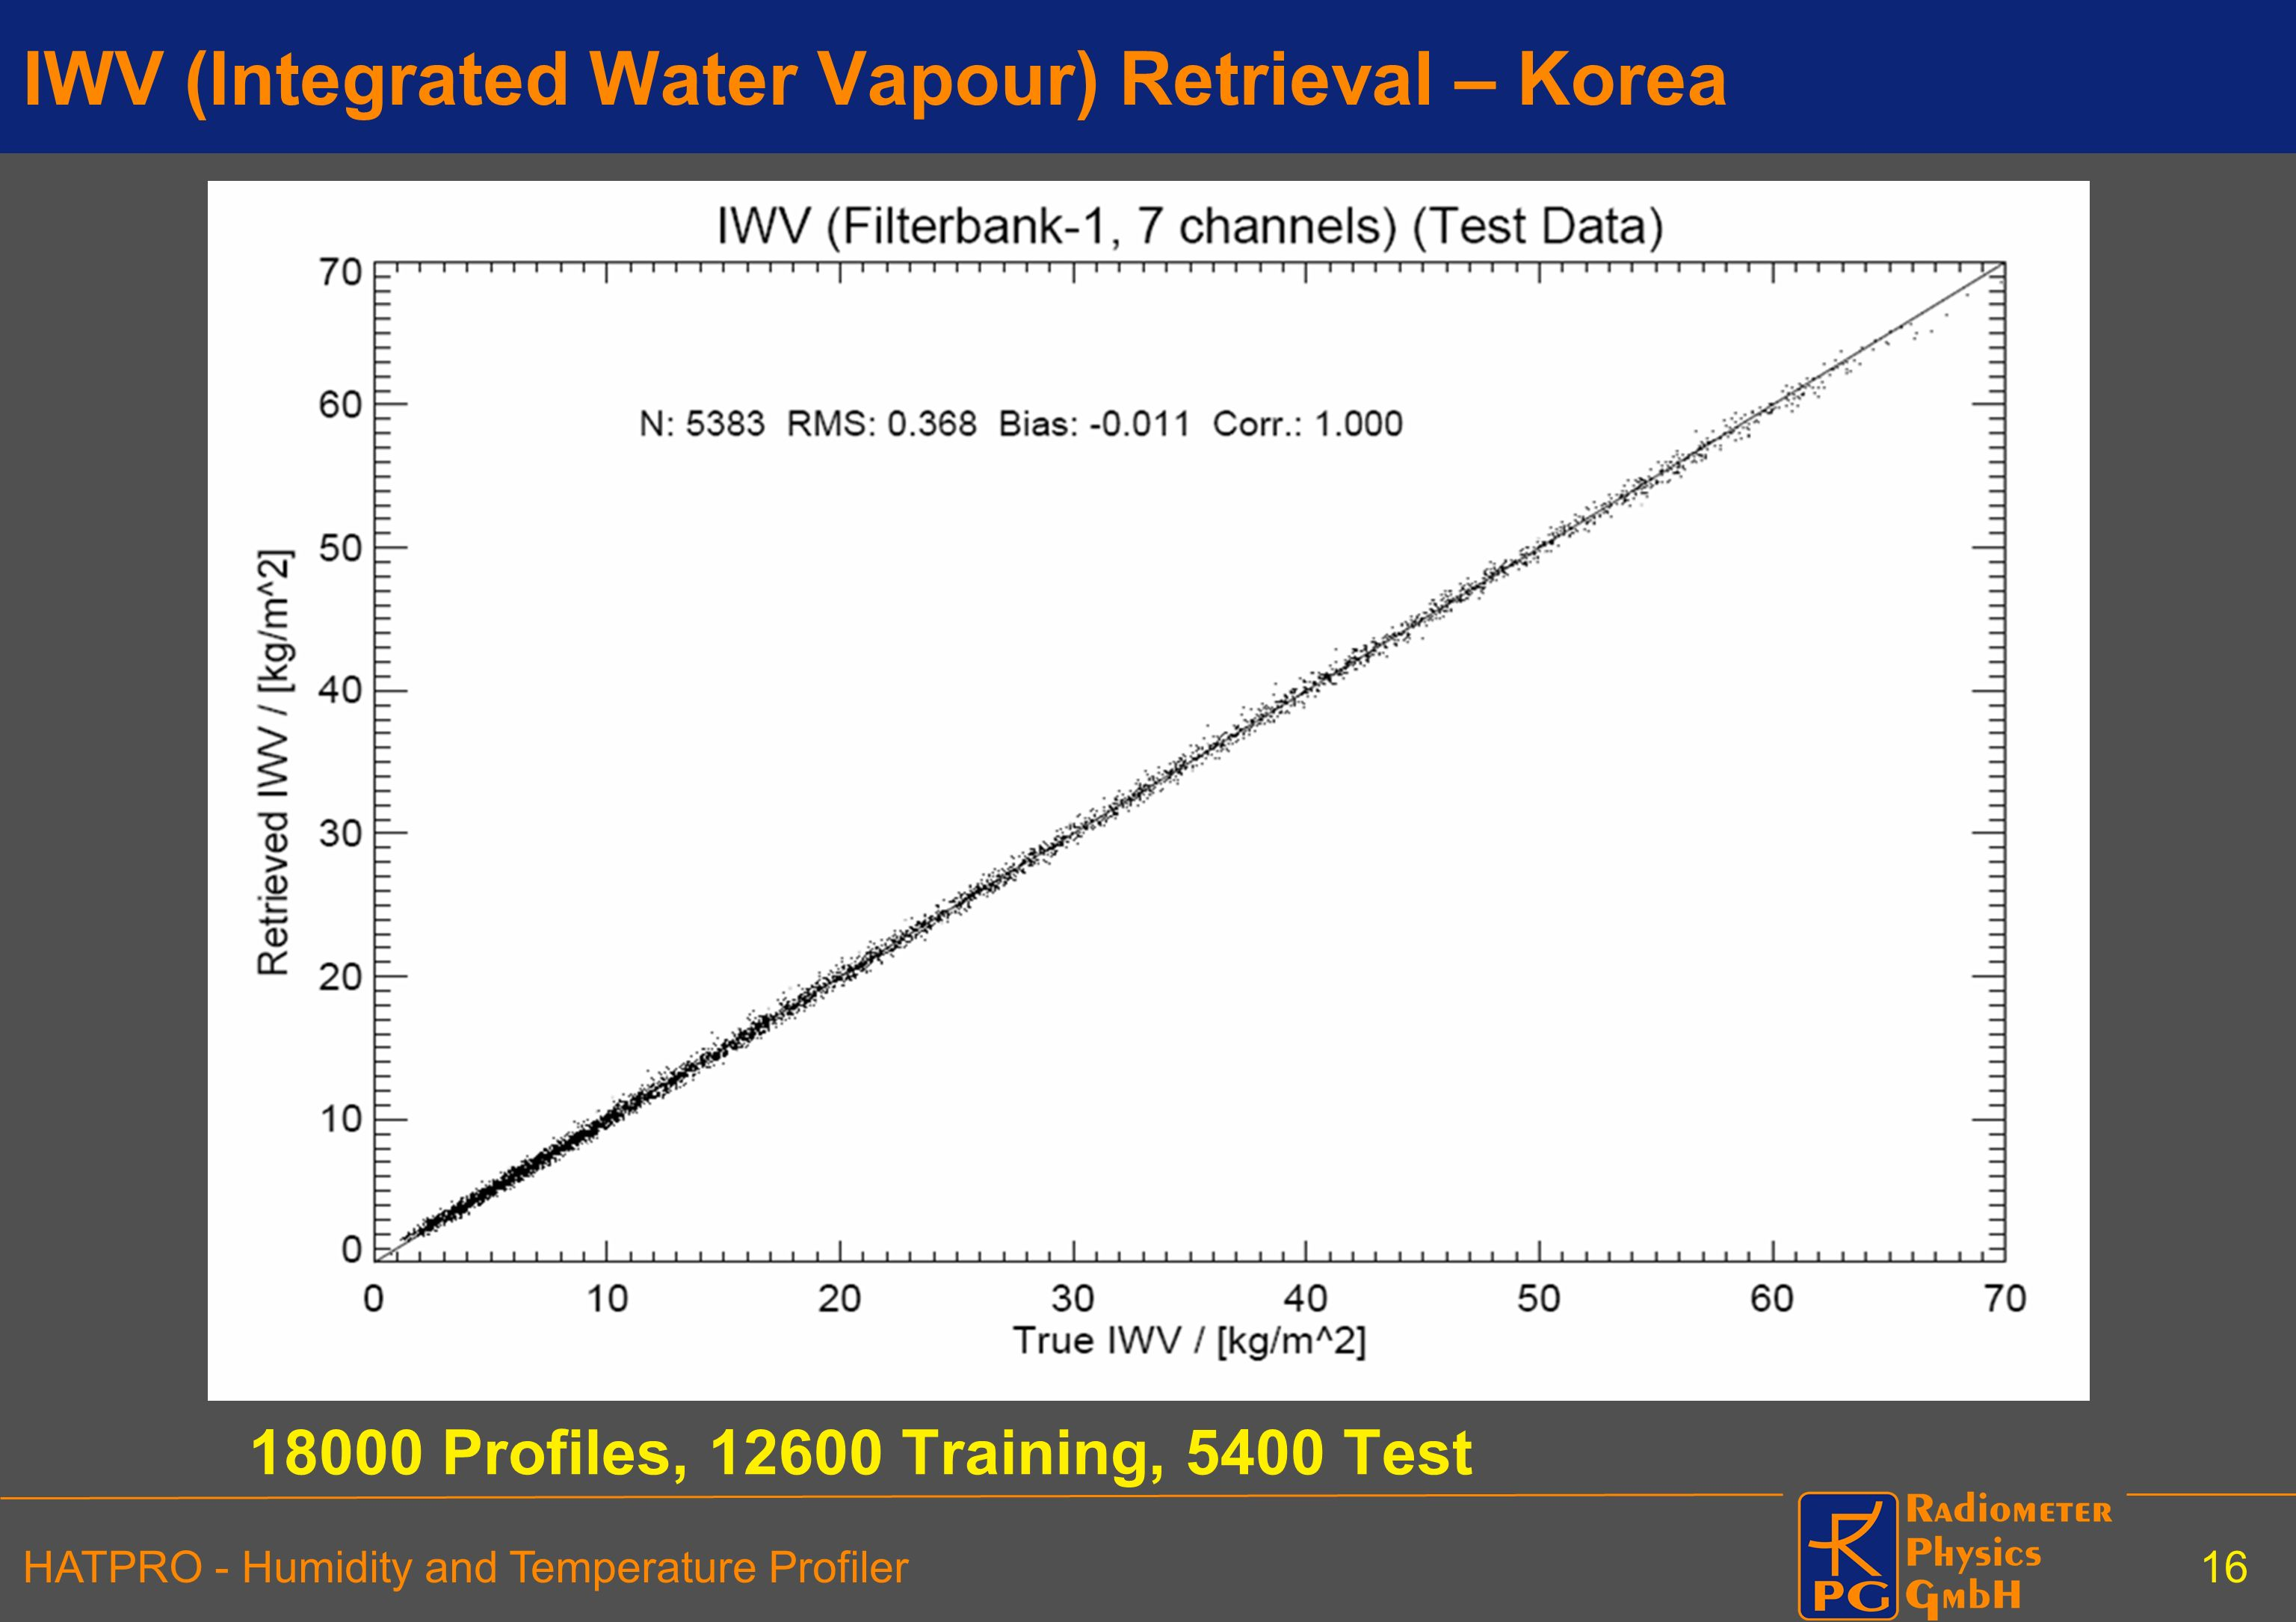 IWV (Integrated Water Vapour) Retrieval – Korea